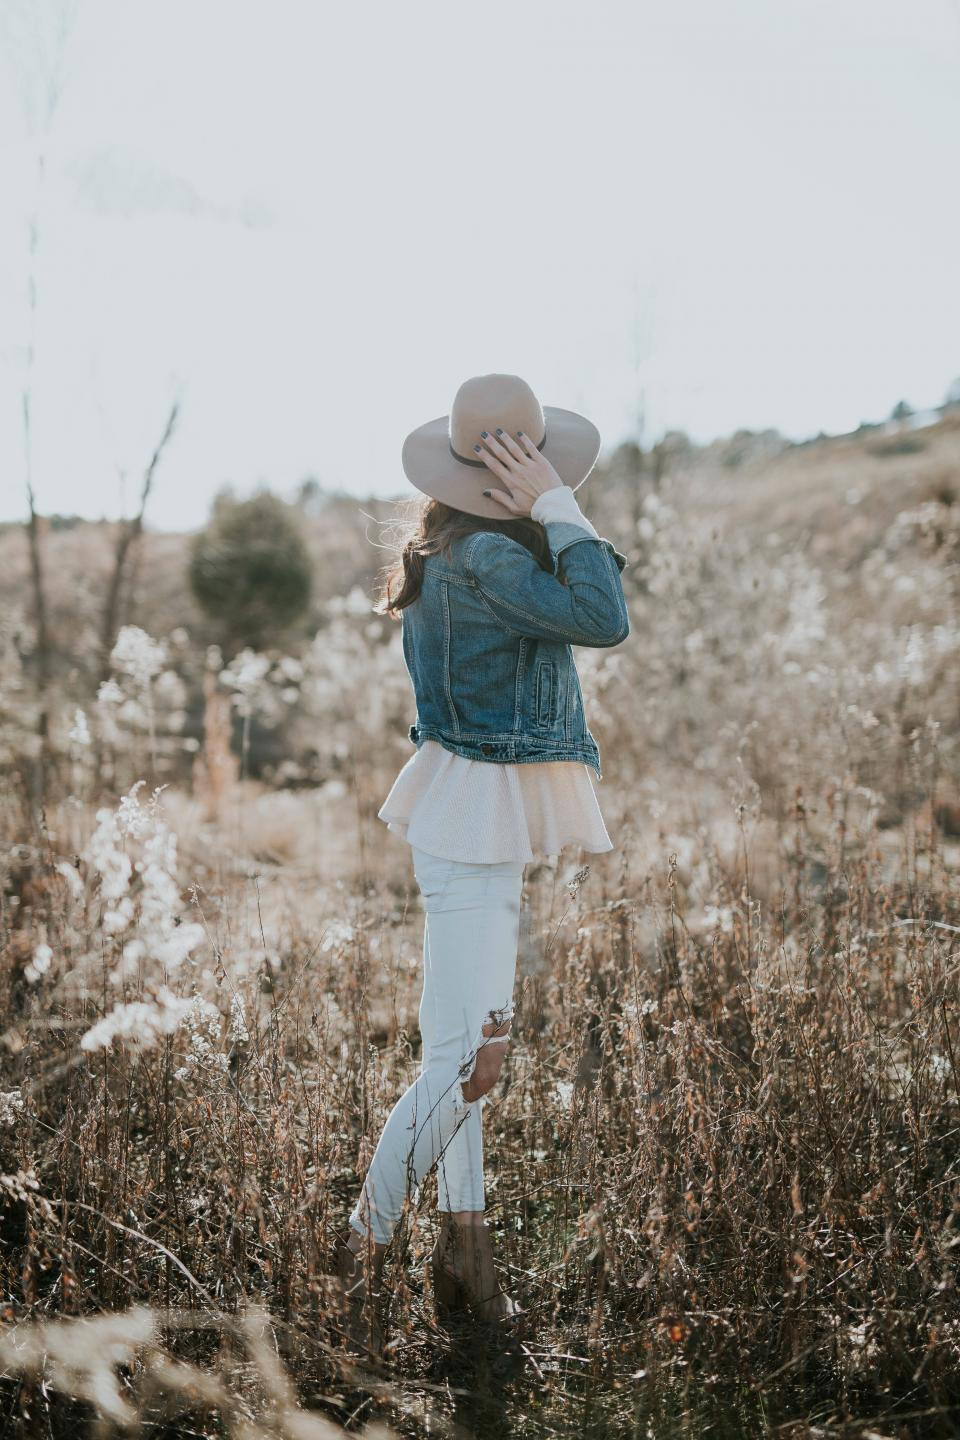 bokeh, blur, ripped, jeans, people, girl, woman, model, landscape, dress, fashion. clothing, outdoor, adventure, hat, shadow, summer, plants, grass, dry